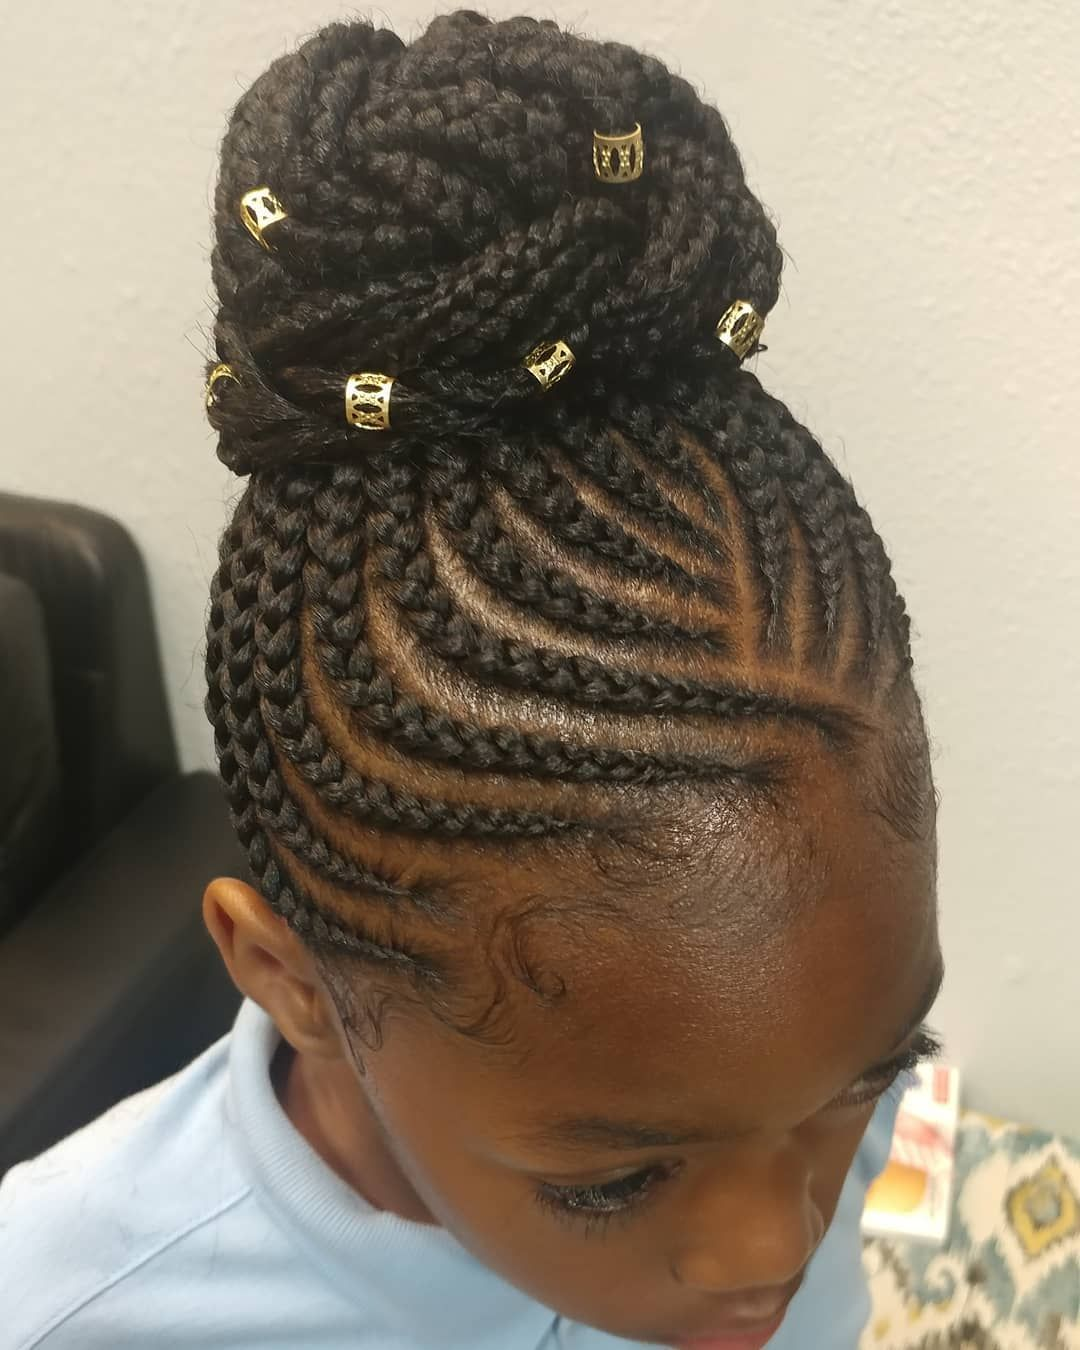 Hairstyles Ideas For Little Black Girls hairstyleforblackwomen.net 2320